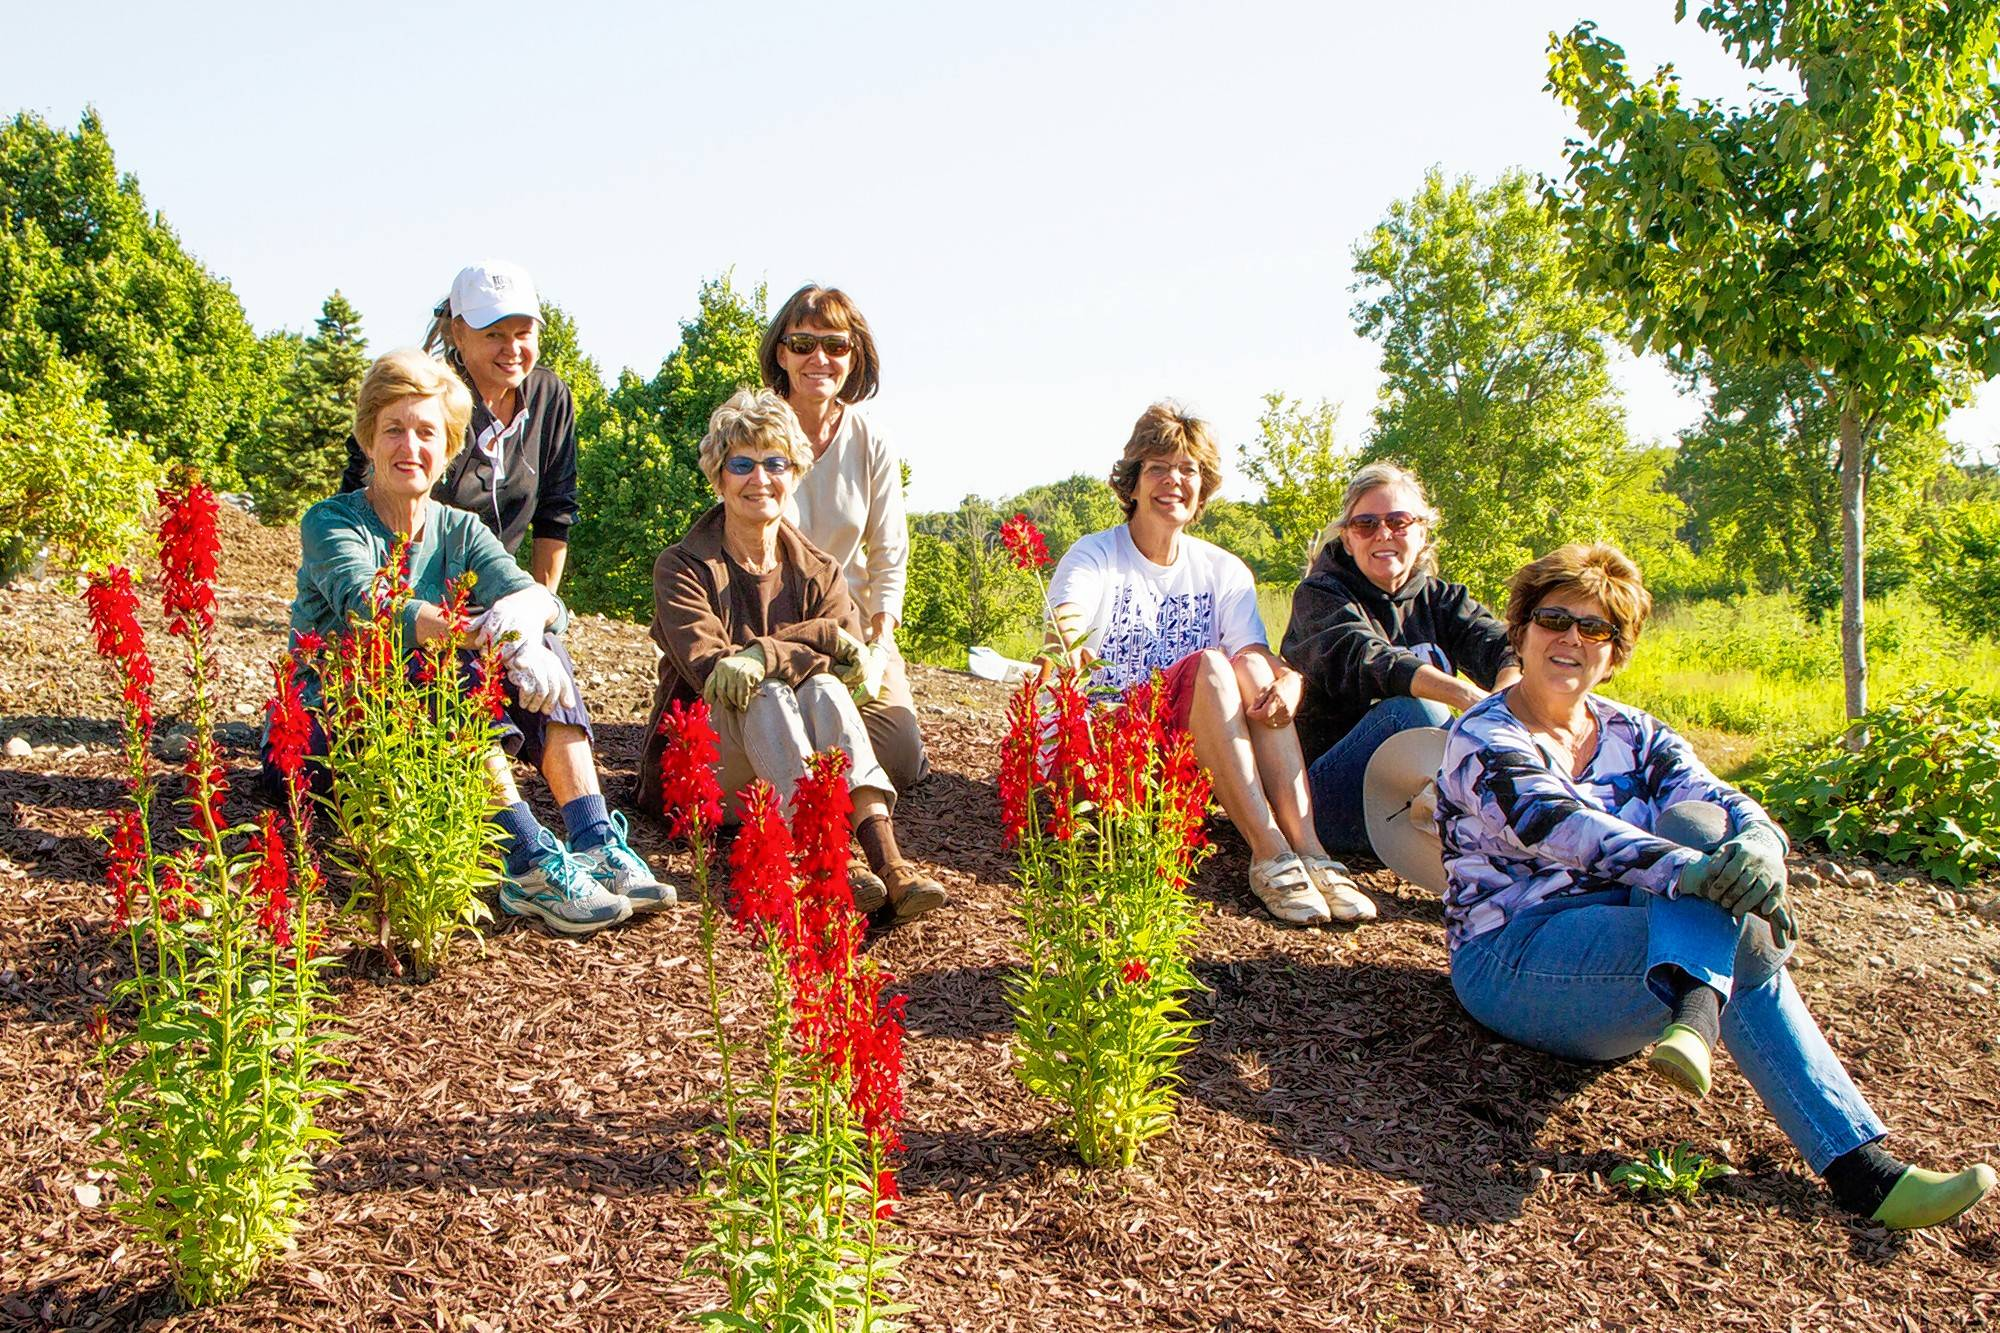 Members of the South Barrington Garden Club rest after planting native species in the South Barrington Conservancy, a 35-acre plot of land set aside for the preservation and restoration of wooded and wetland prairies.